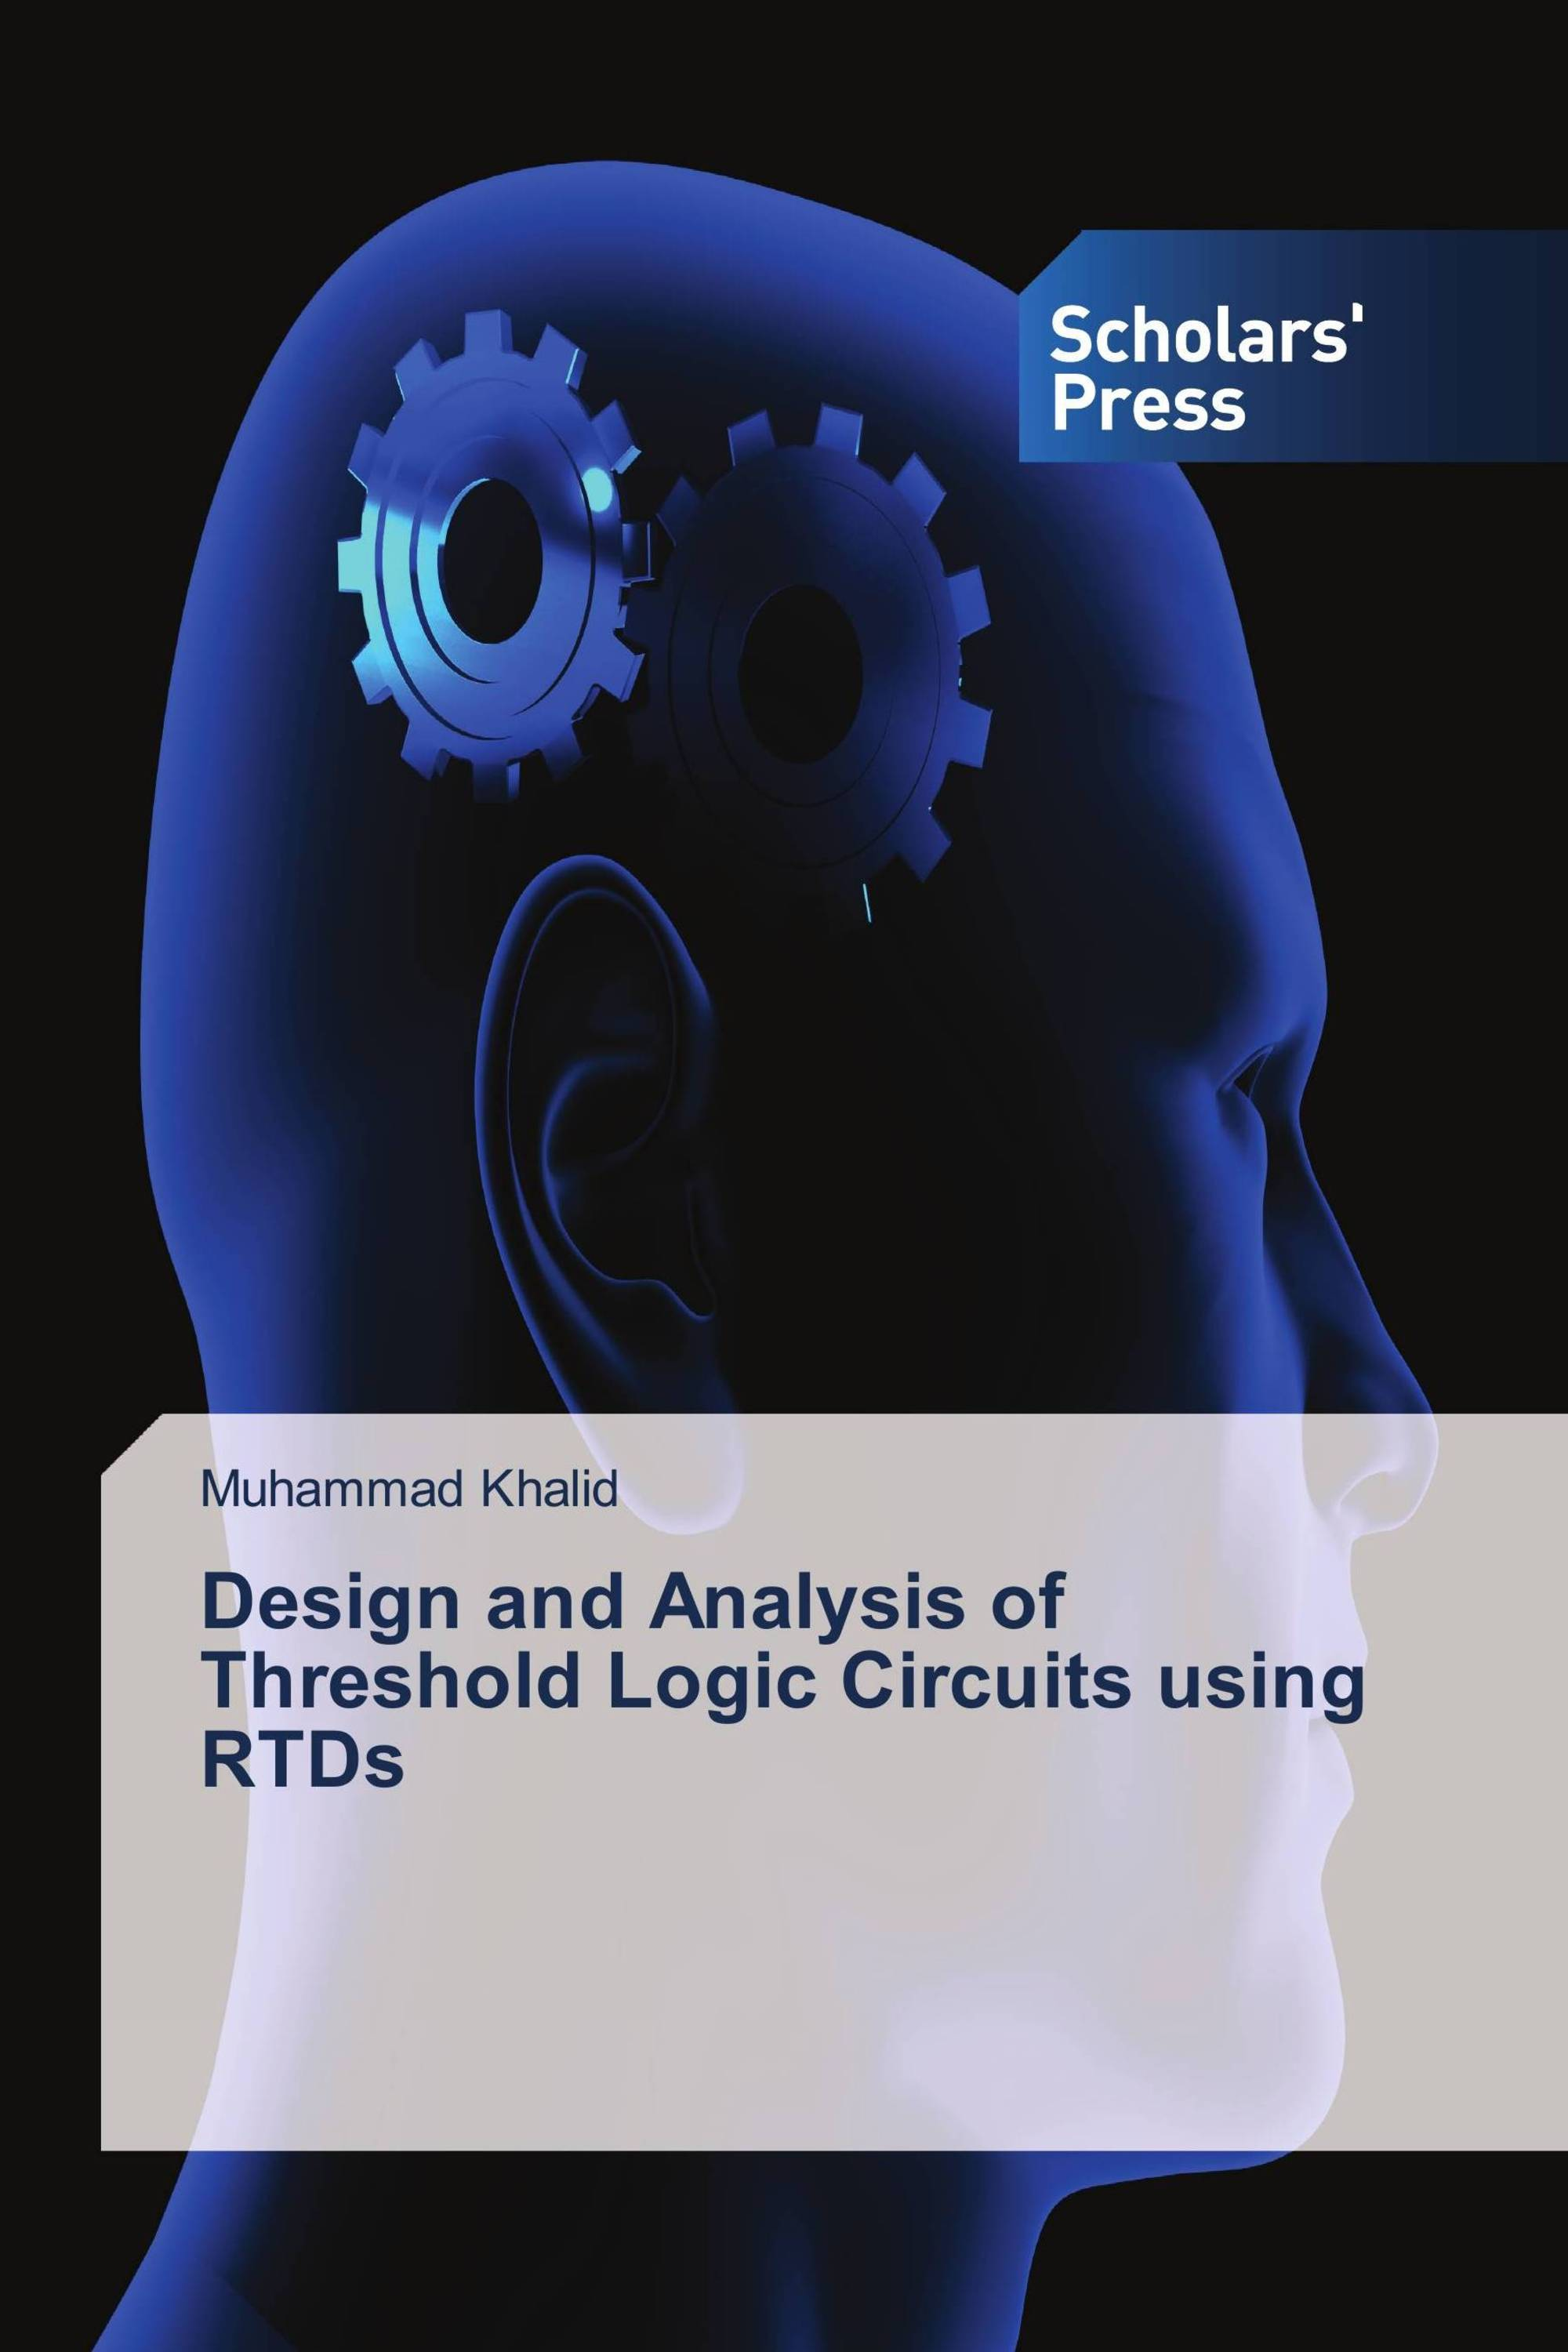 Design And Analysis Of Threshold Logic Circuits Using Rtds 978 620 Cmos Gate Circuitry Gates Electronics Textbook 2 31289 9 9786202312899 6202312890